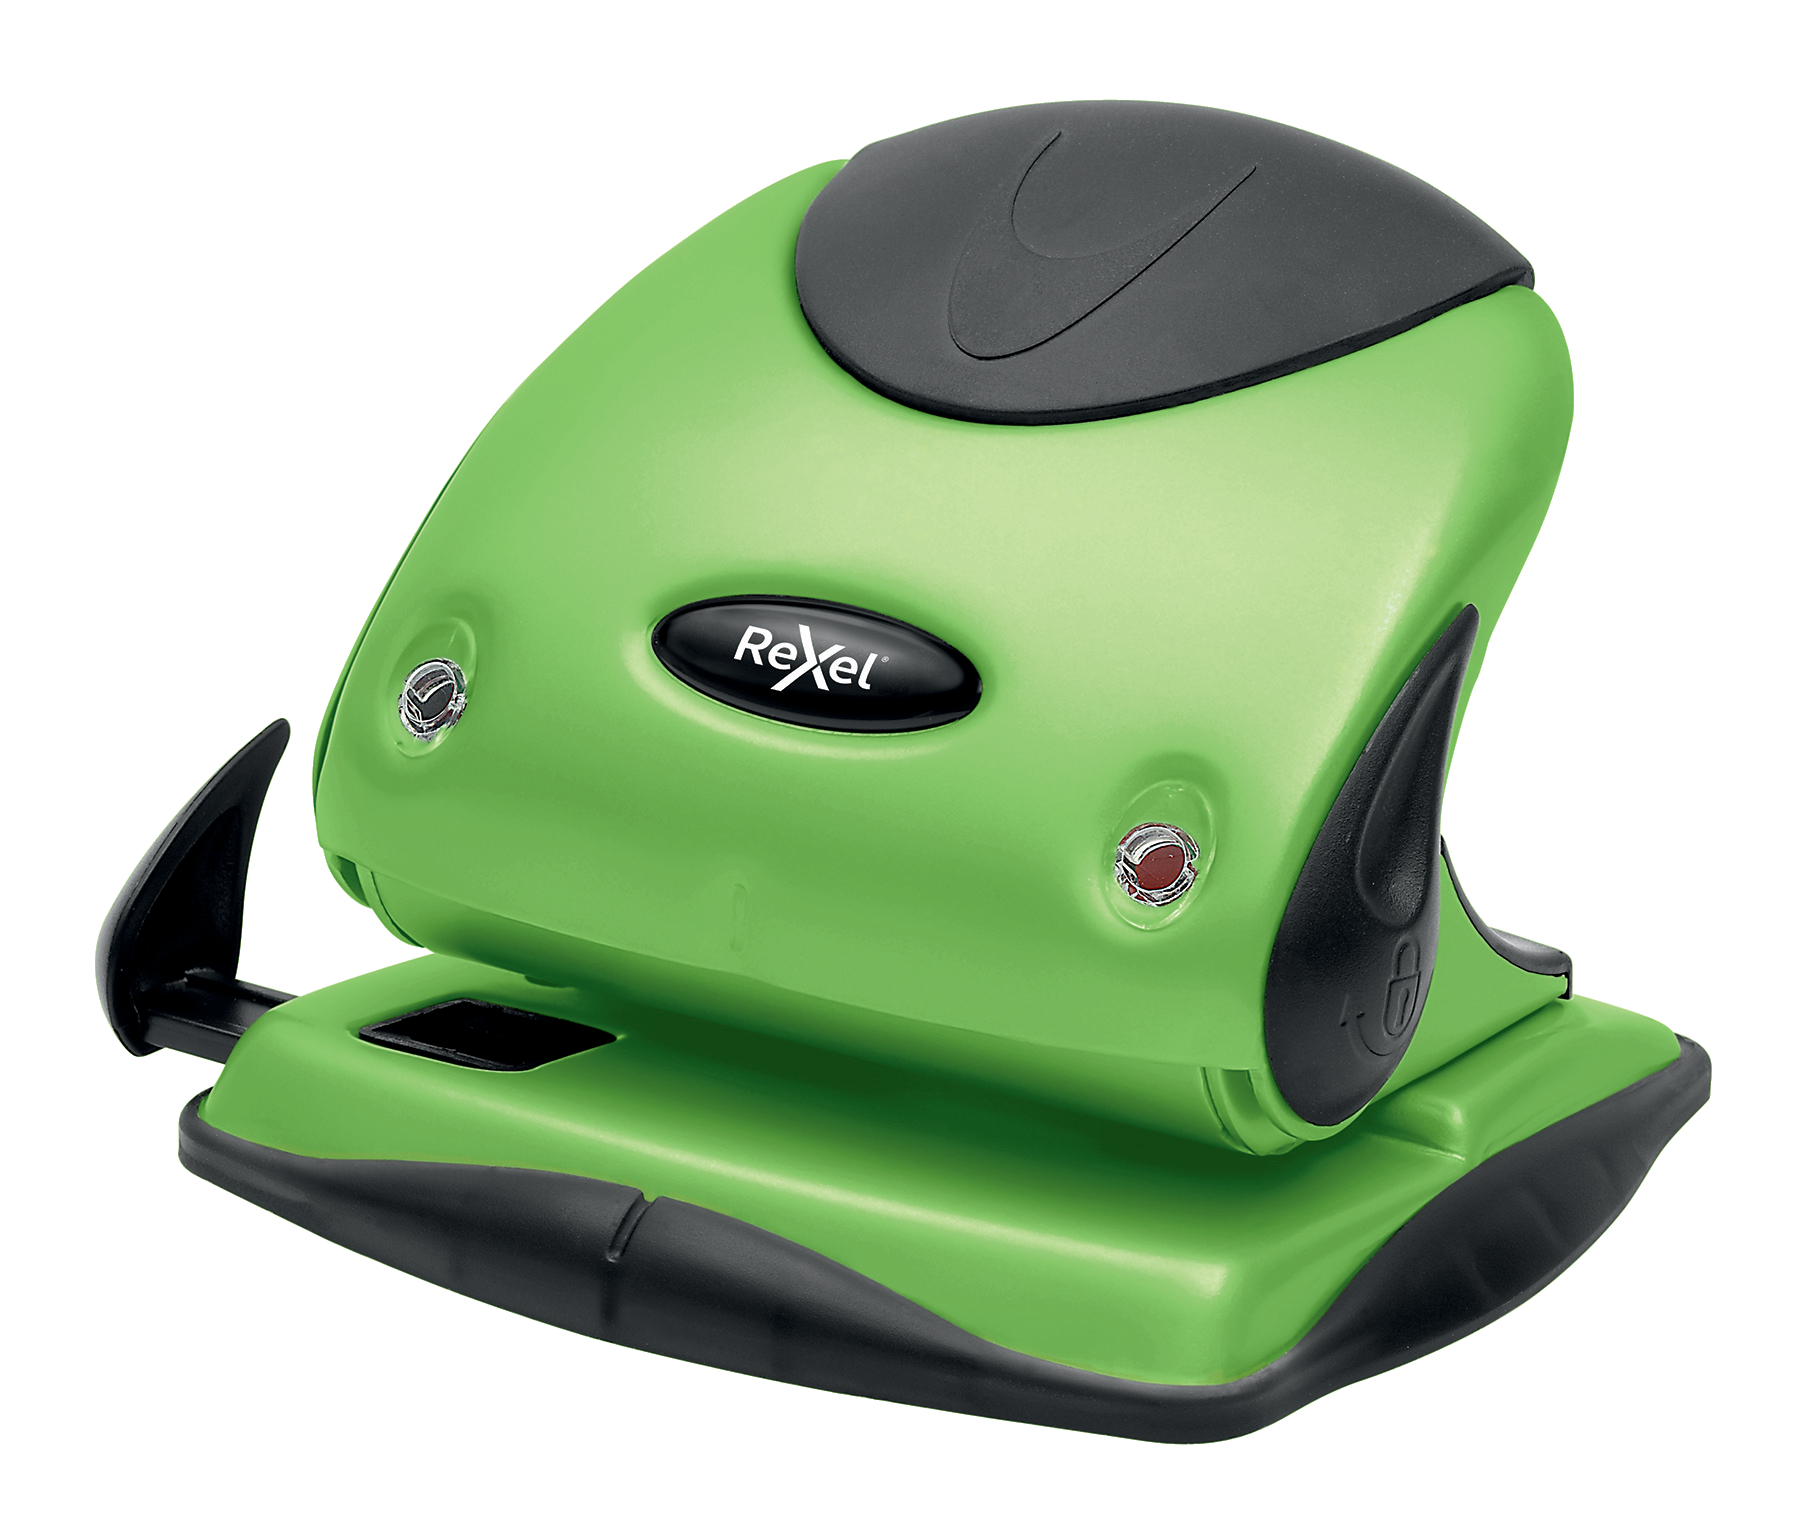 Rexel Choices P225 2 Hole Punch Green